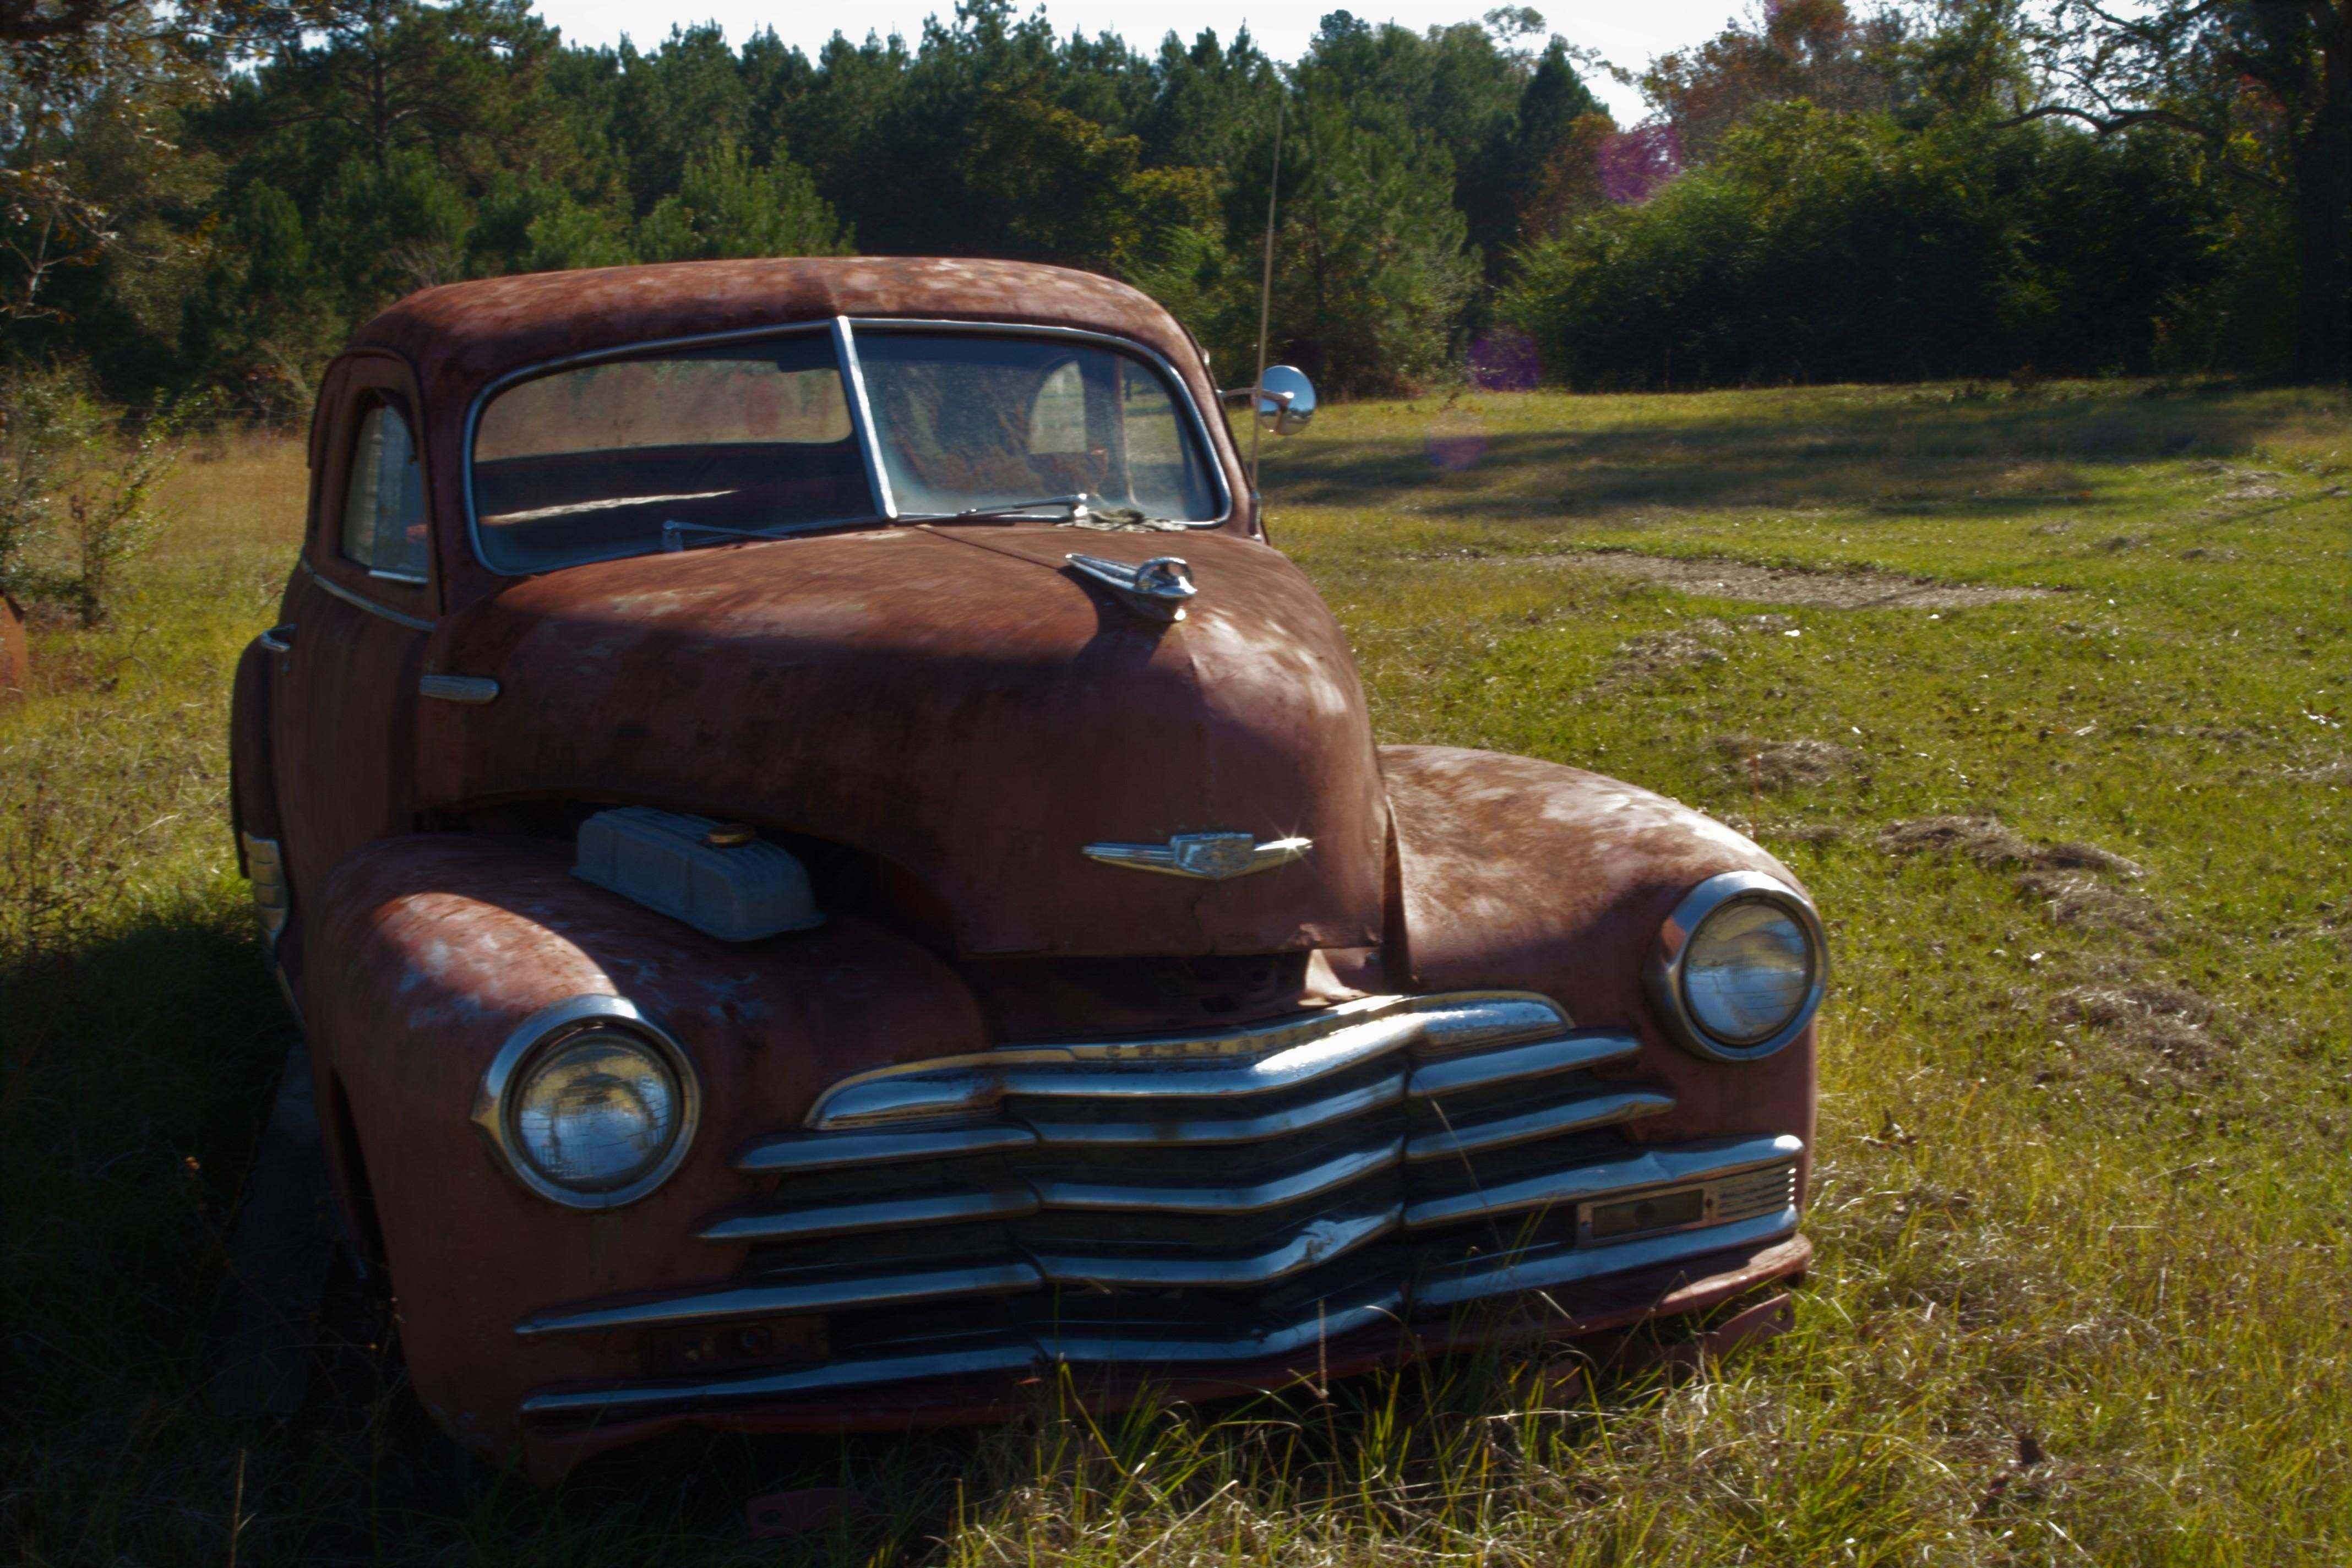 Found this old car in a field | nature and life | Pinterest ...